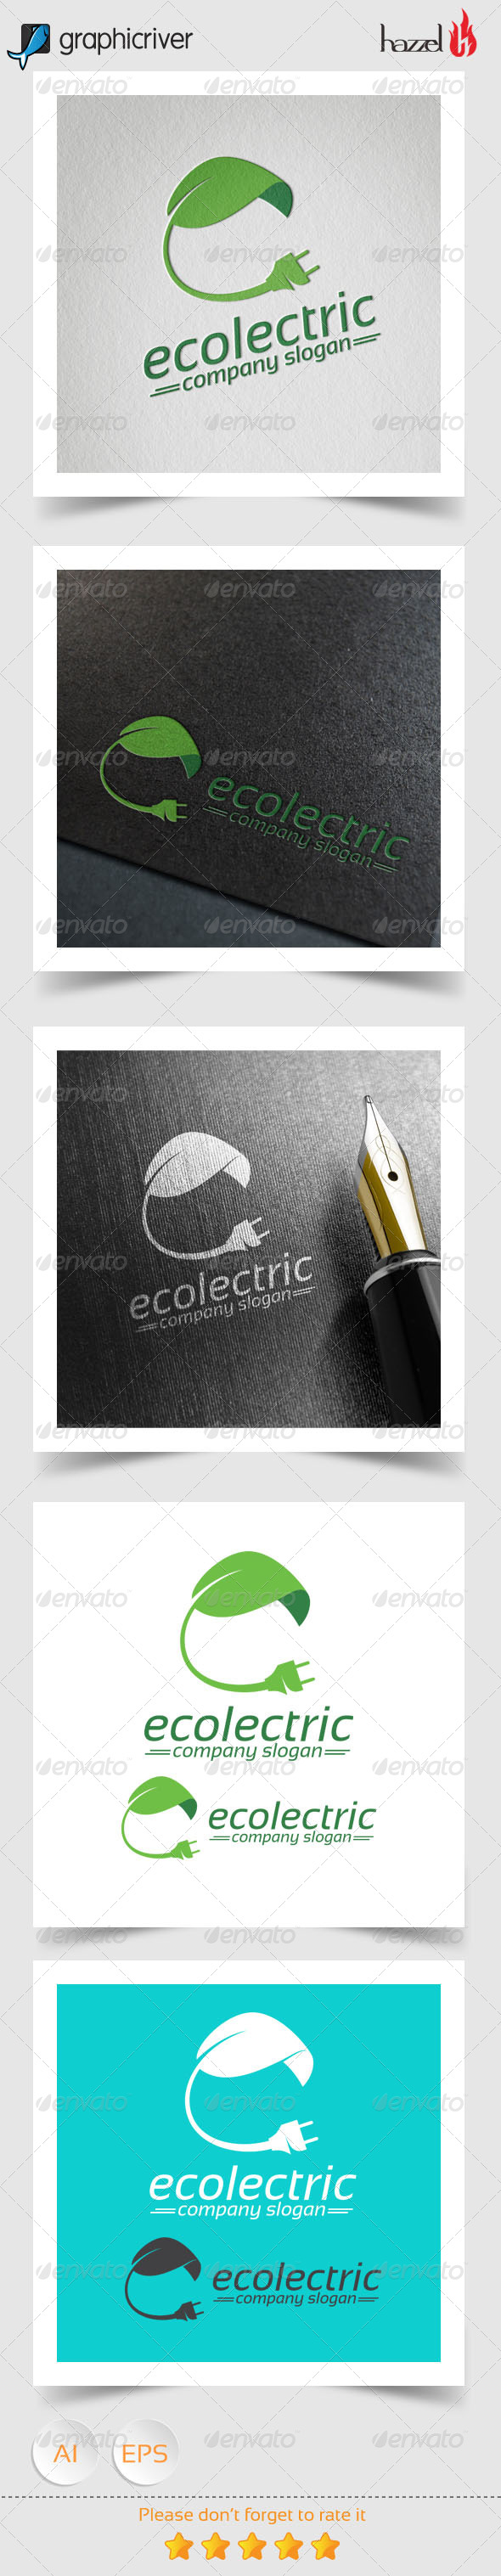 GraphicRiver Ecolectric Logo 8166172